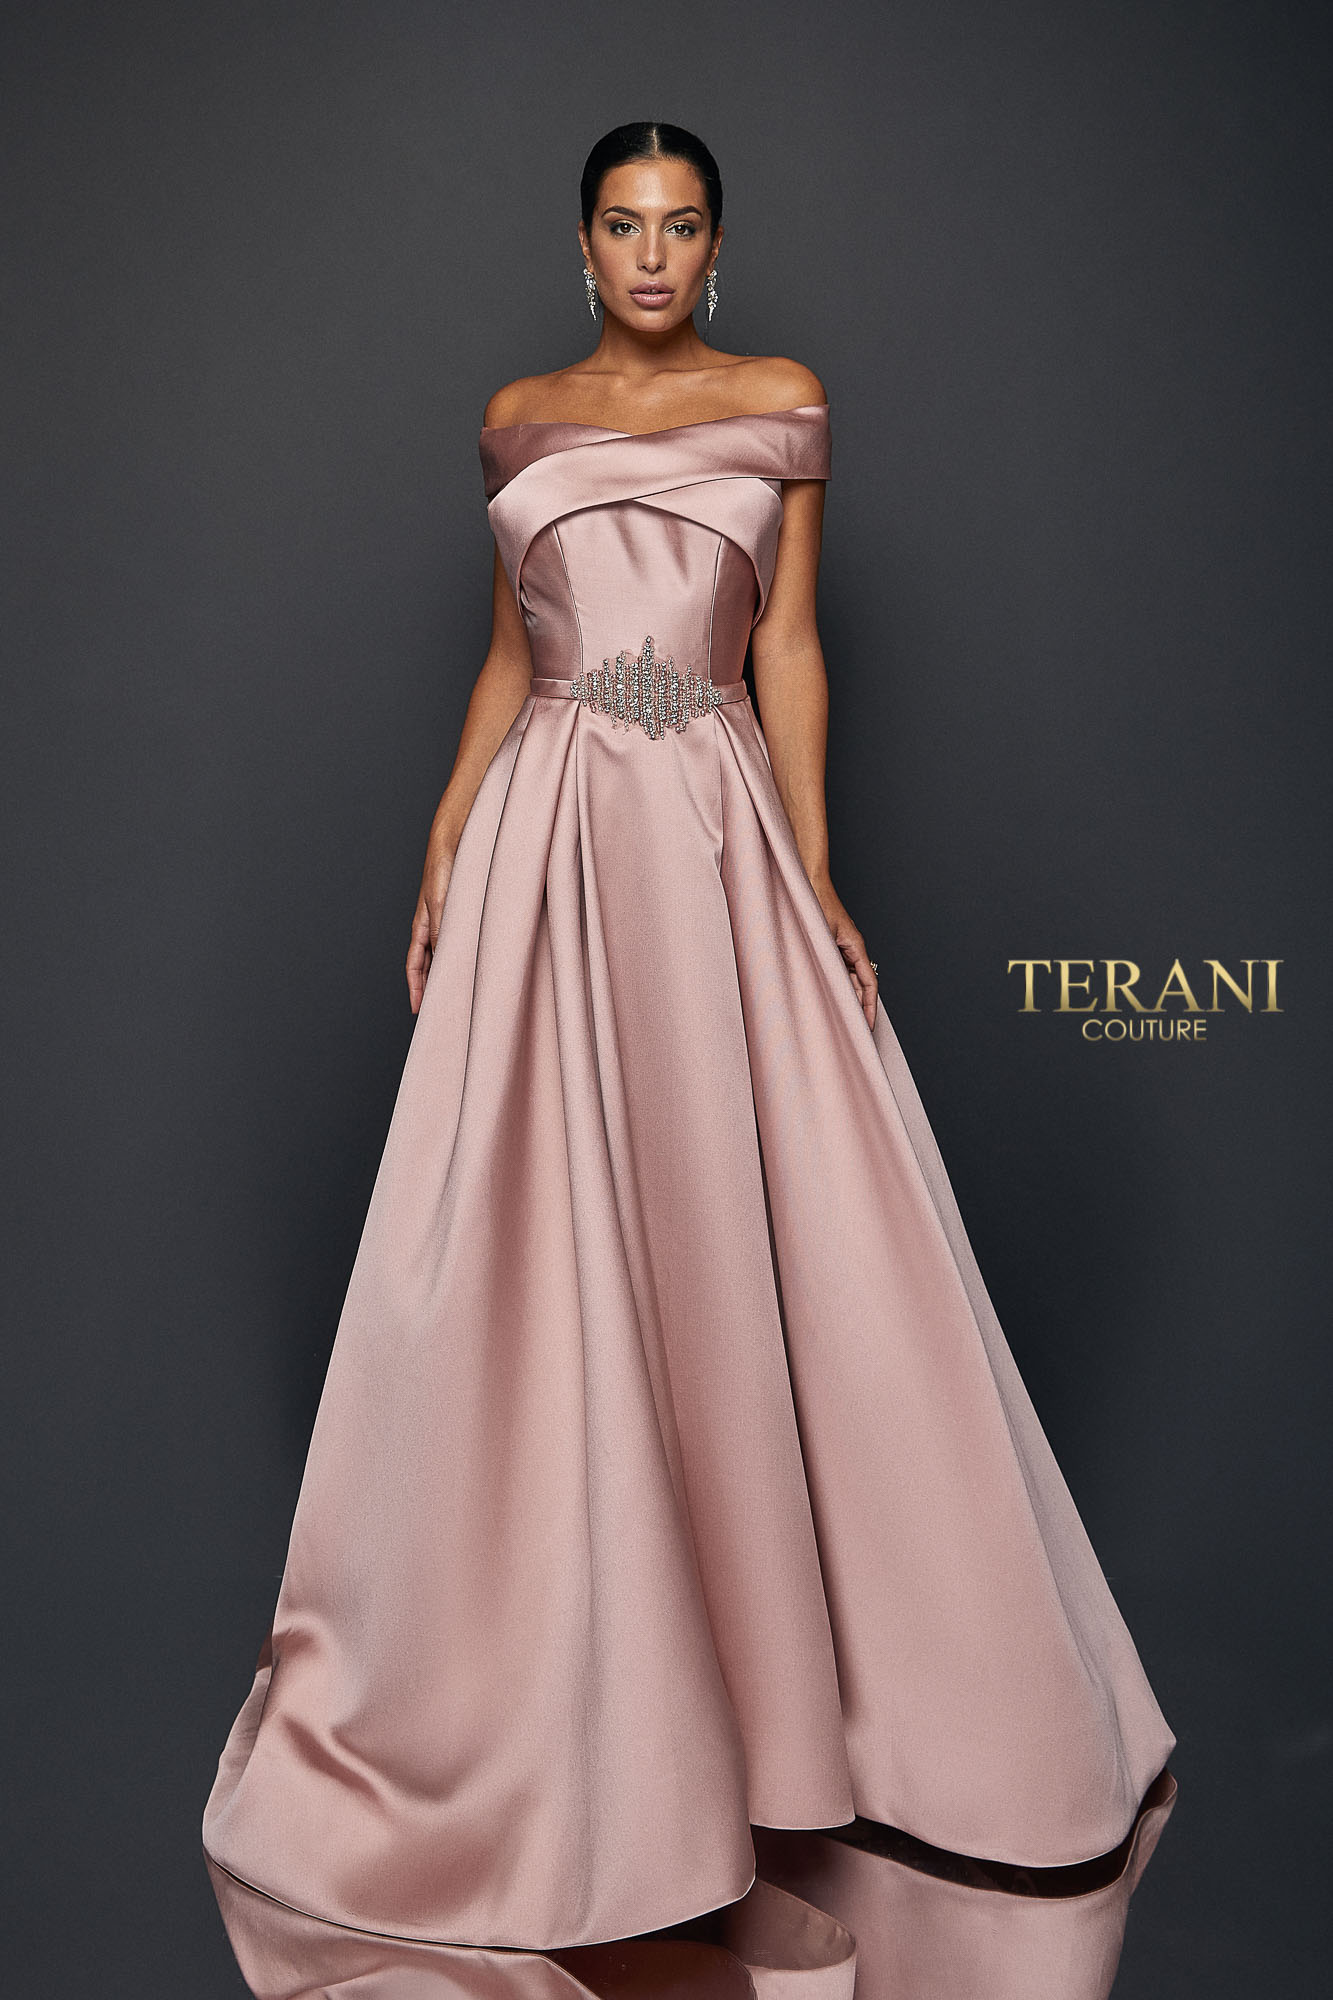 Wrapped Collar Ball Gown 1921m0517